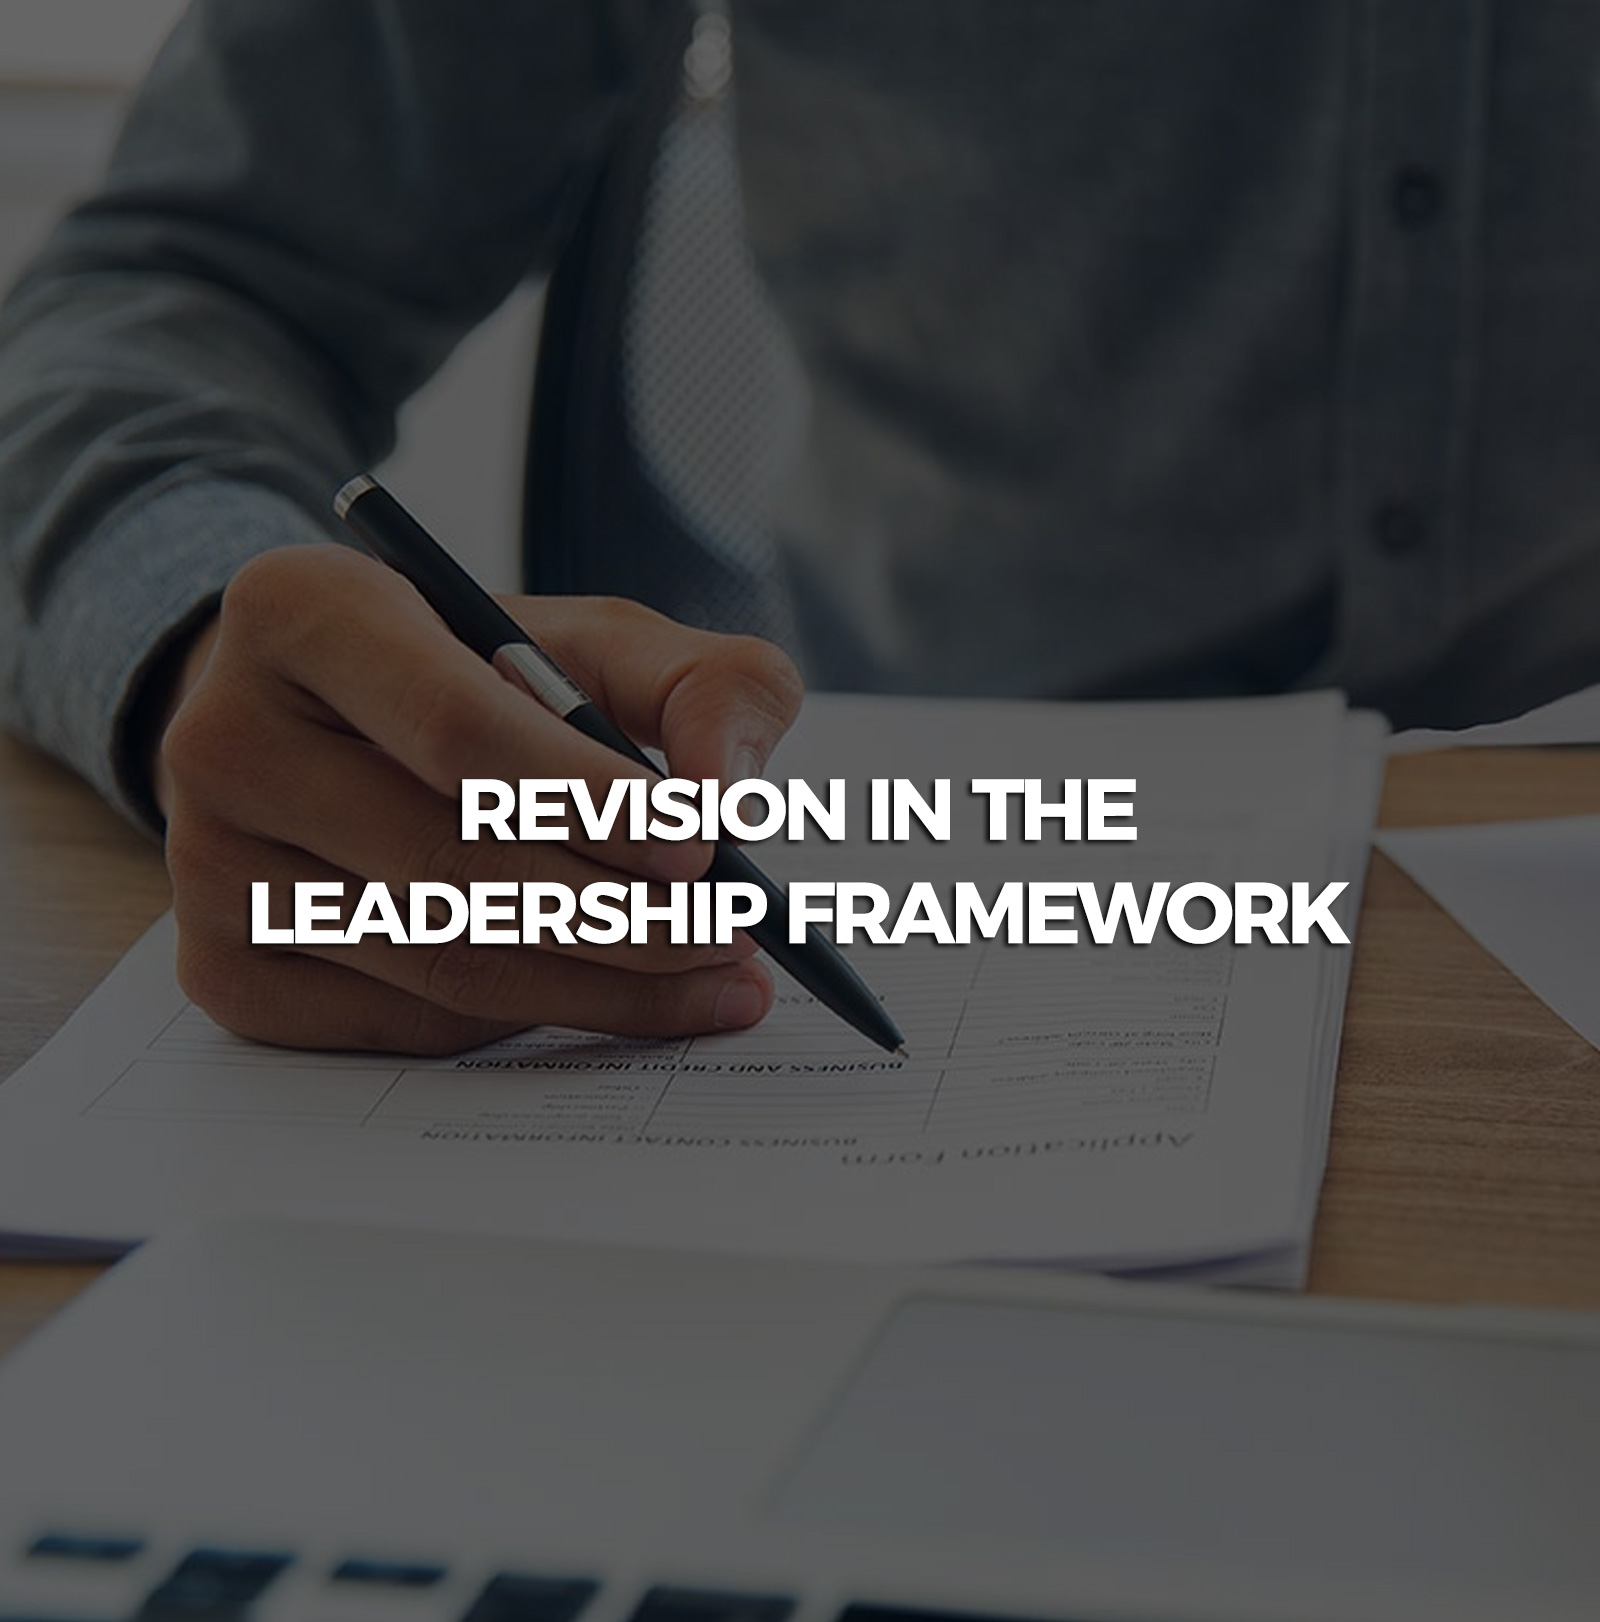 Revision-in-the-leadership-framework